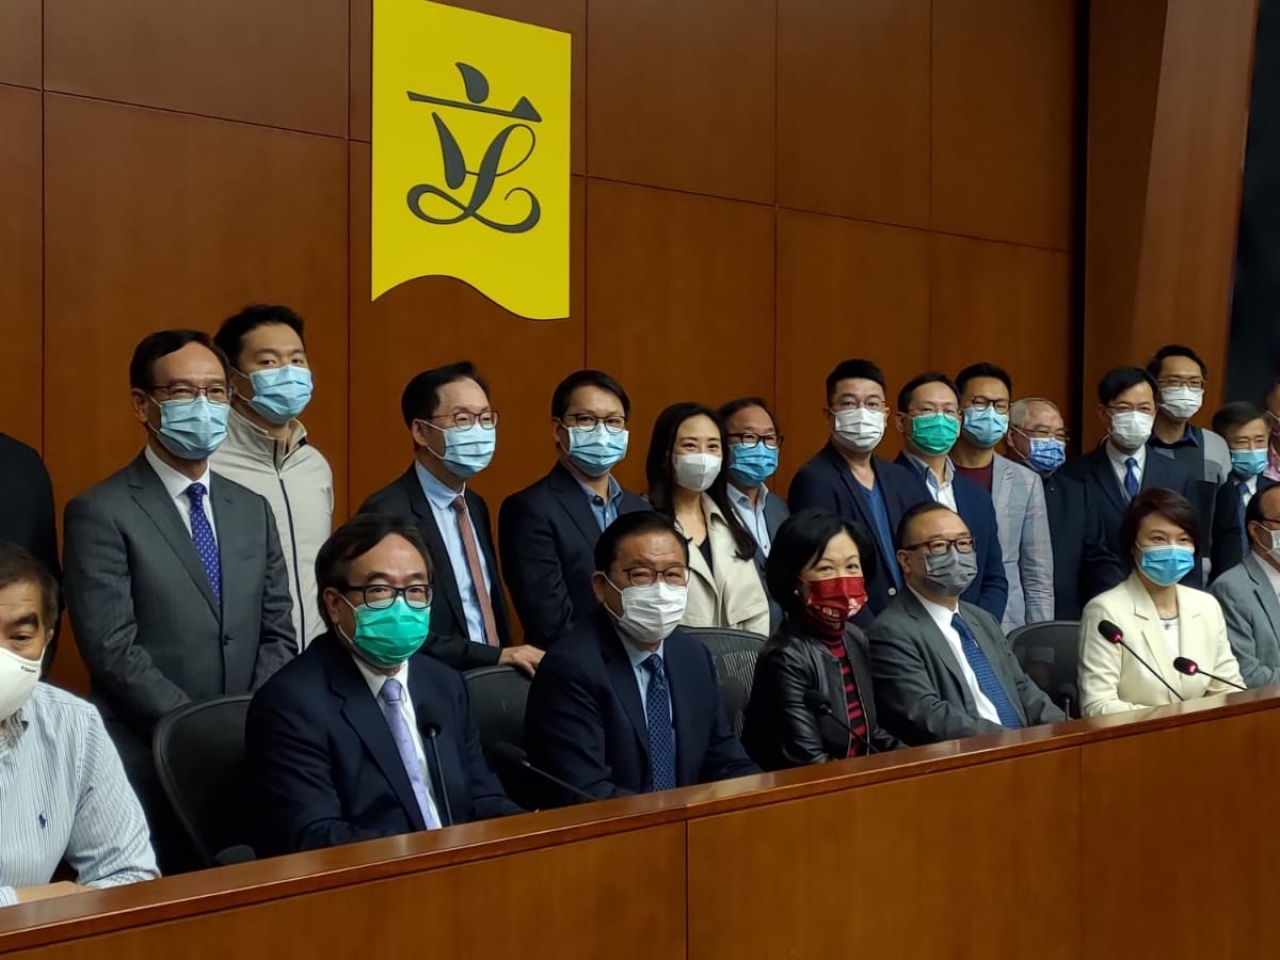 Legco having a glimpse ahead to 'whatever Beijing decides'